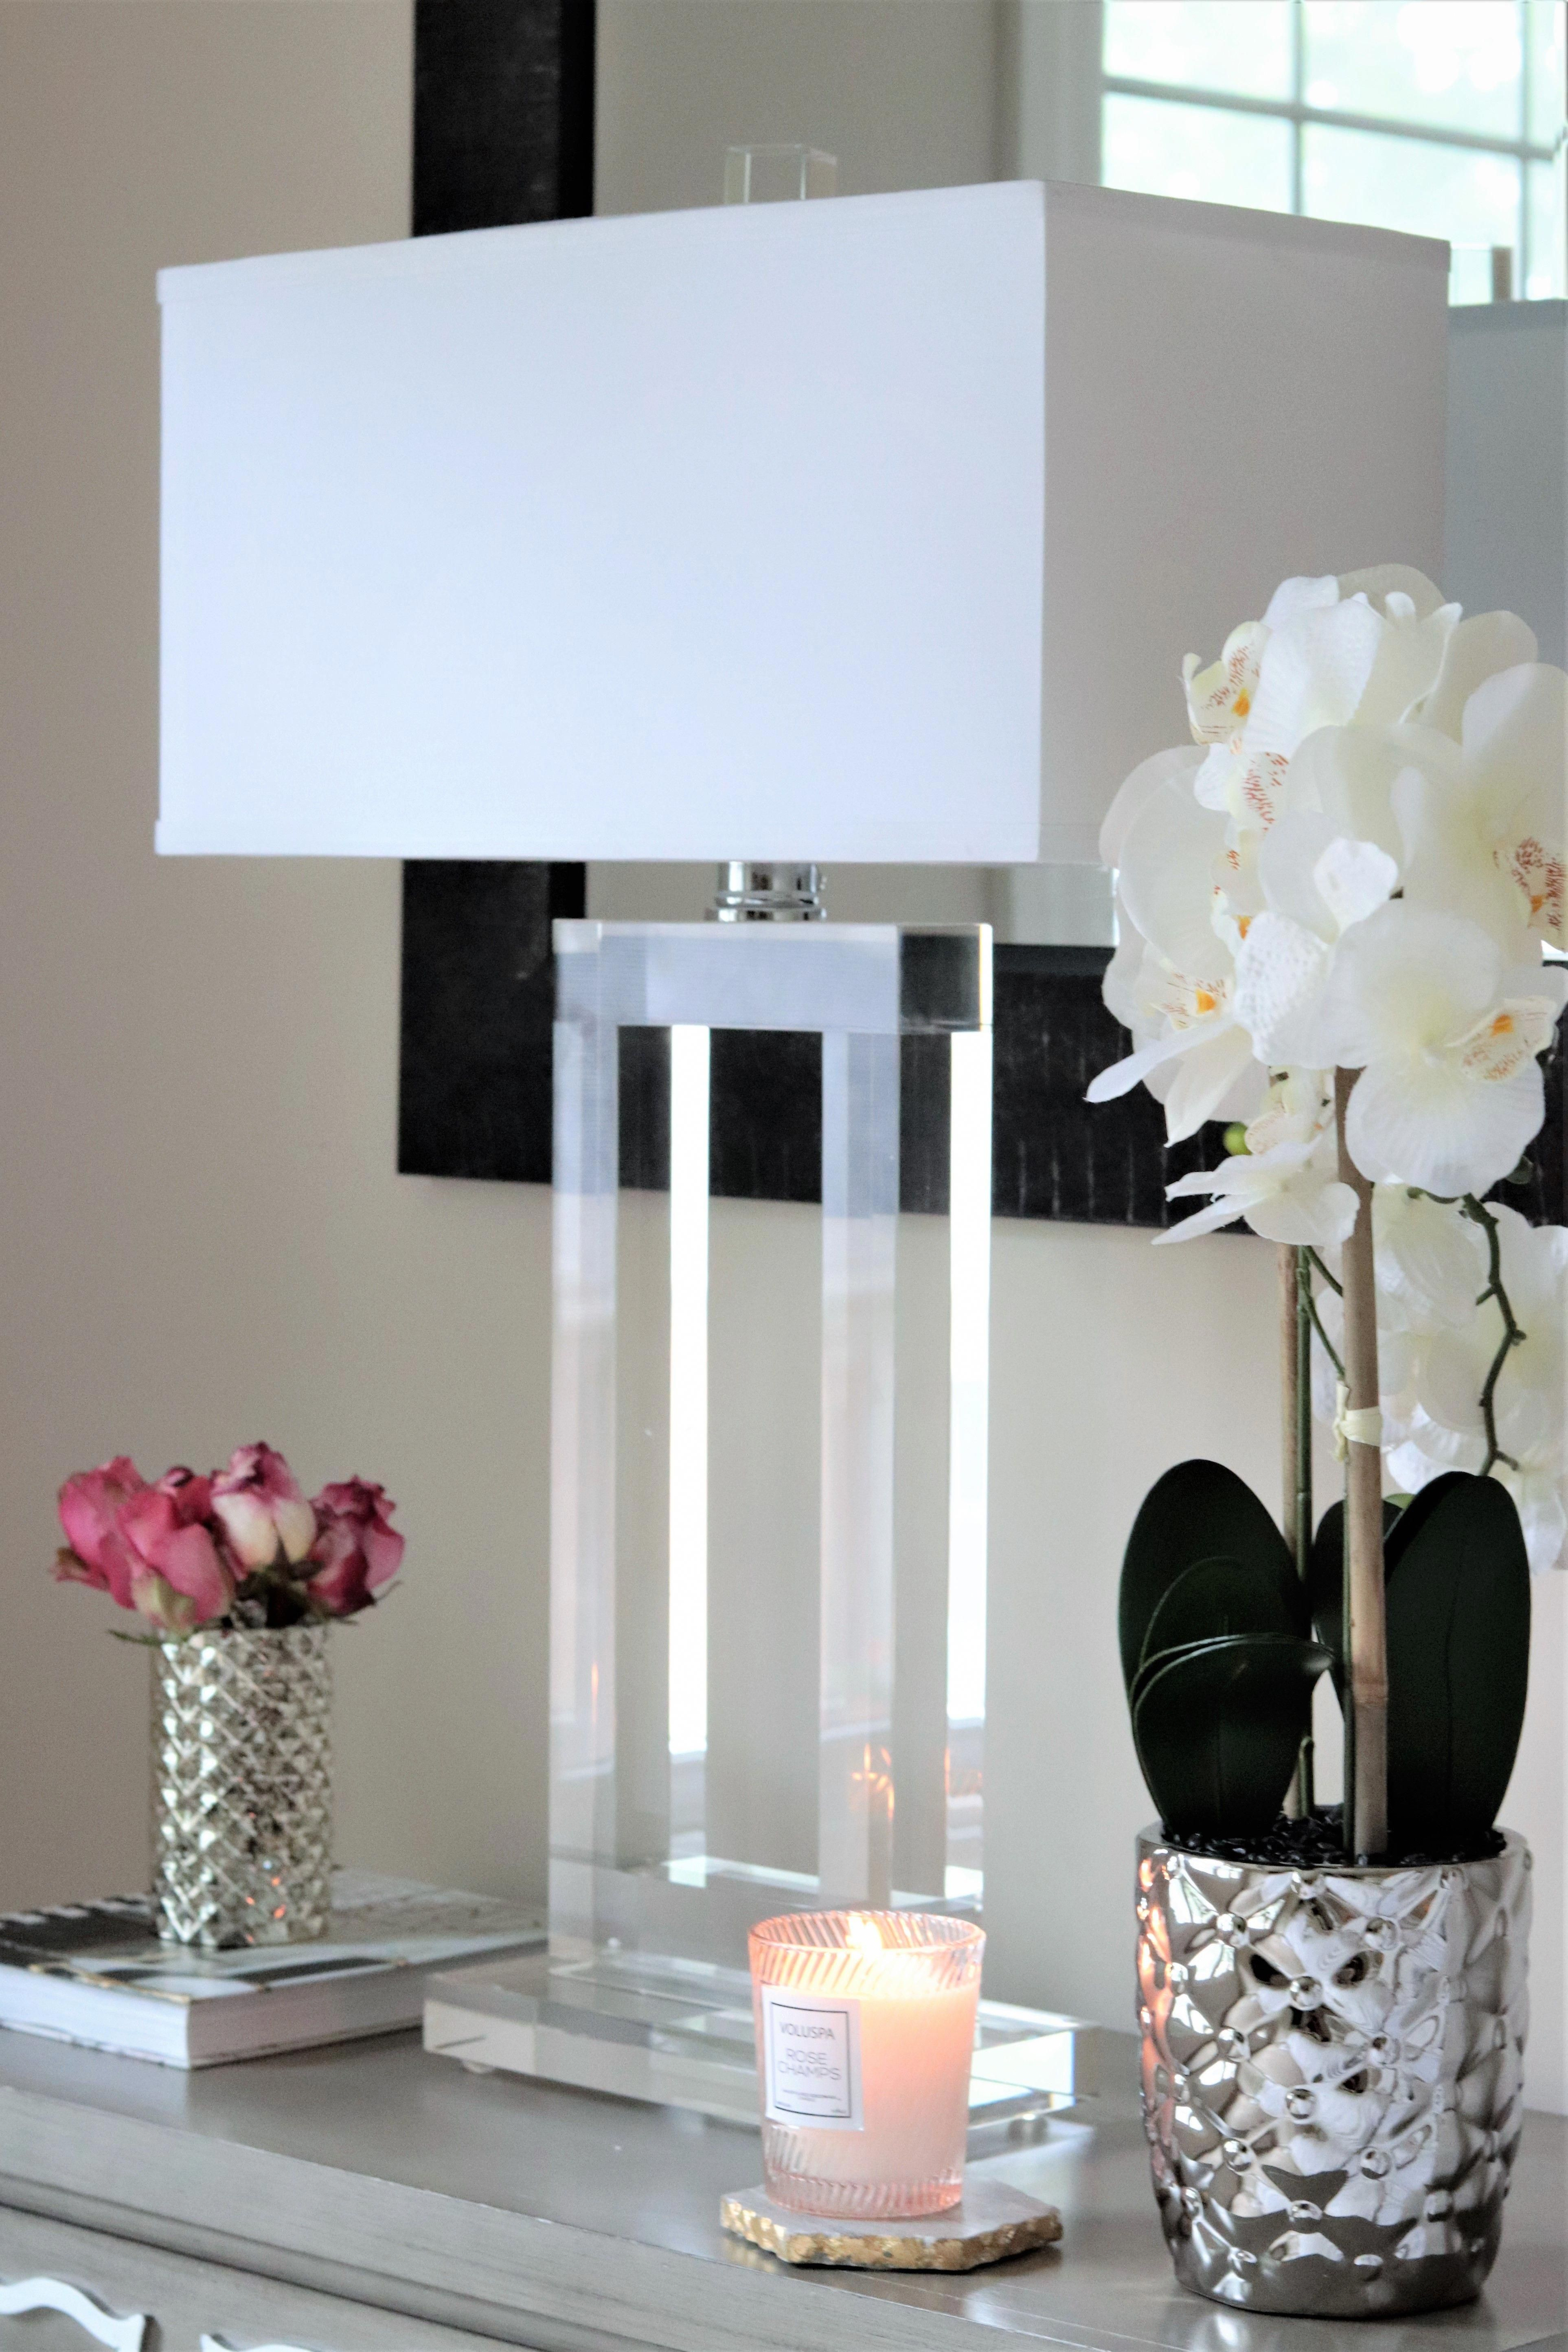 Vienna Full Spectrum Window Modern Crystal Table Lamp 3m960 Lamps Plus In 2020 Table Lamps For Bedroom Crystal Table Lamps Crystal Lamp